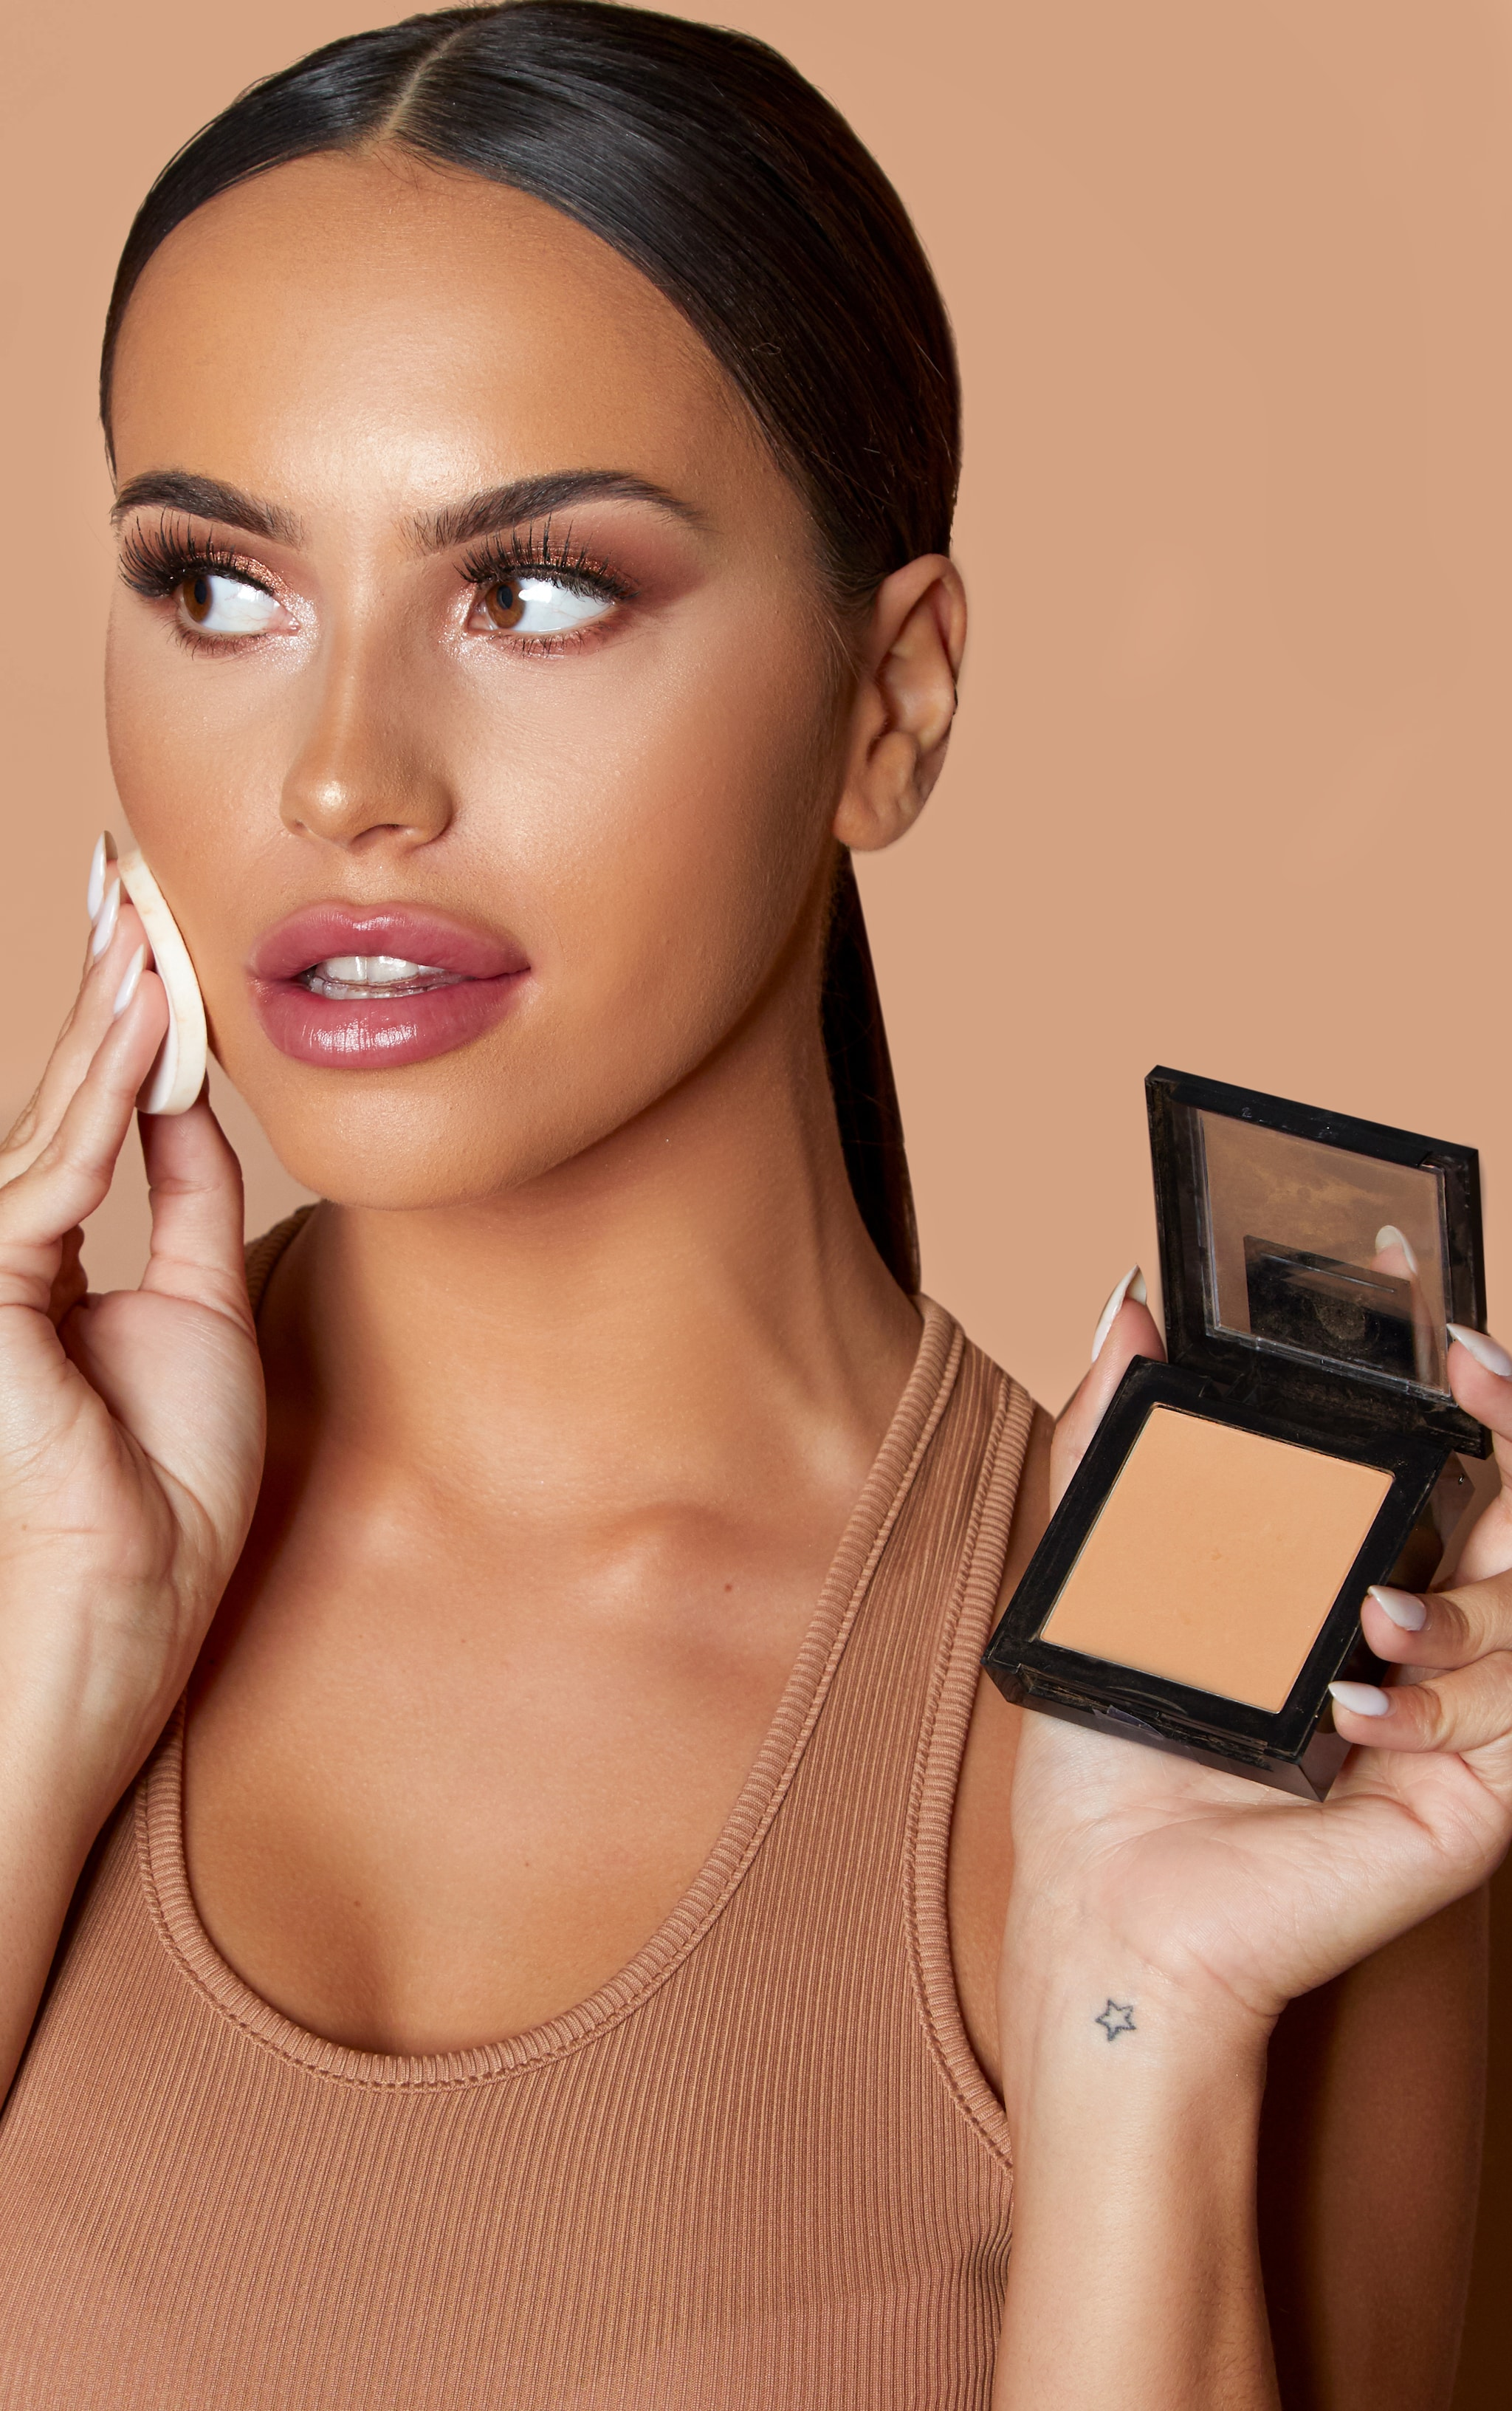 Maybelline Fit Me Pressed Face Powder 120 Classic Ivory 4